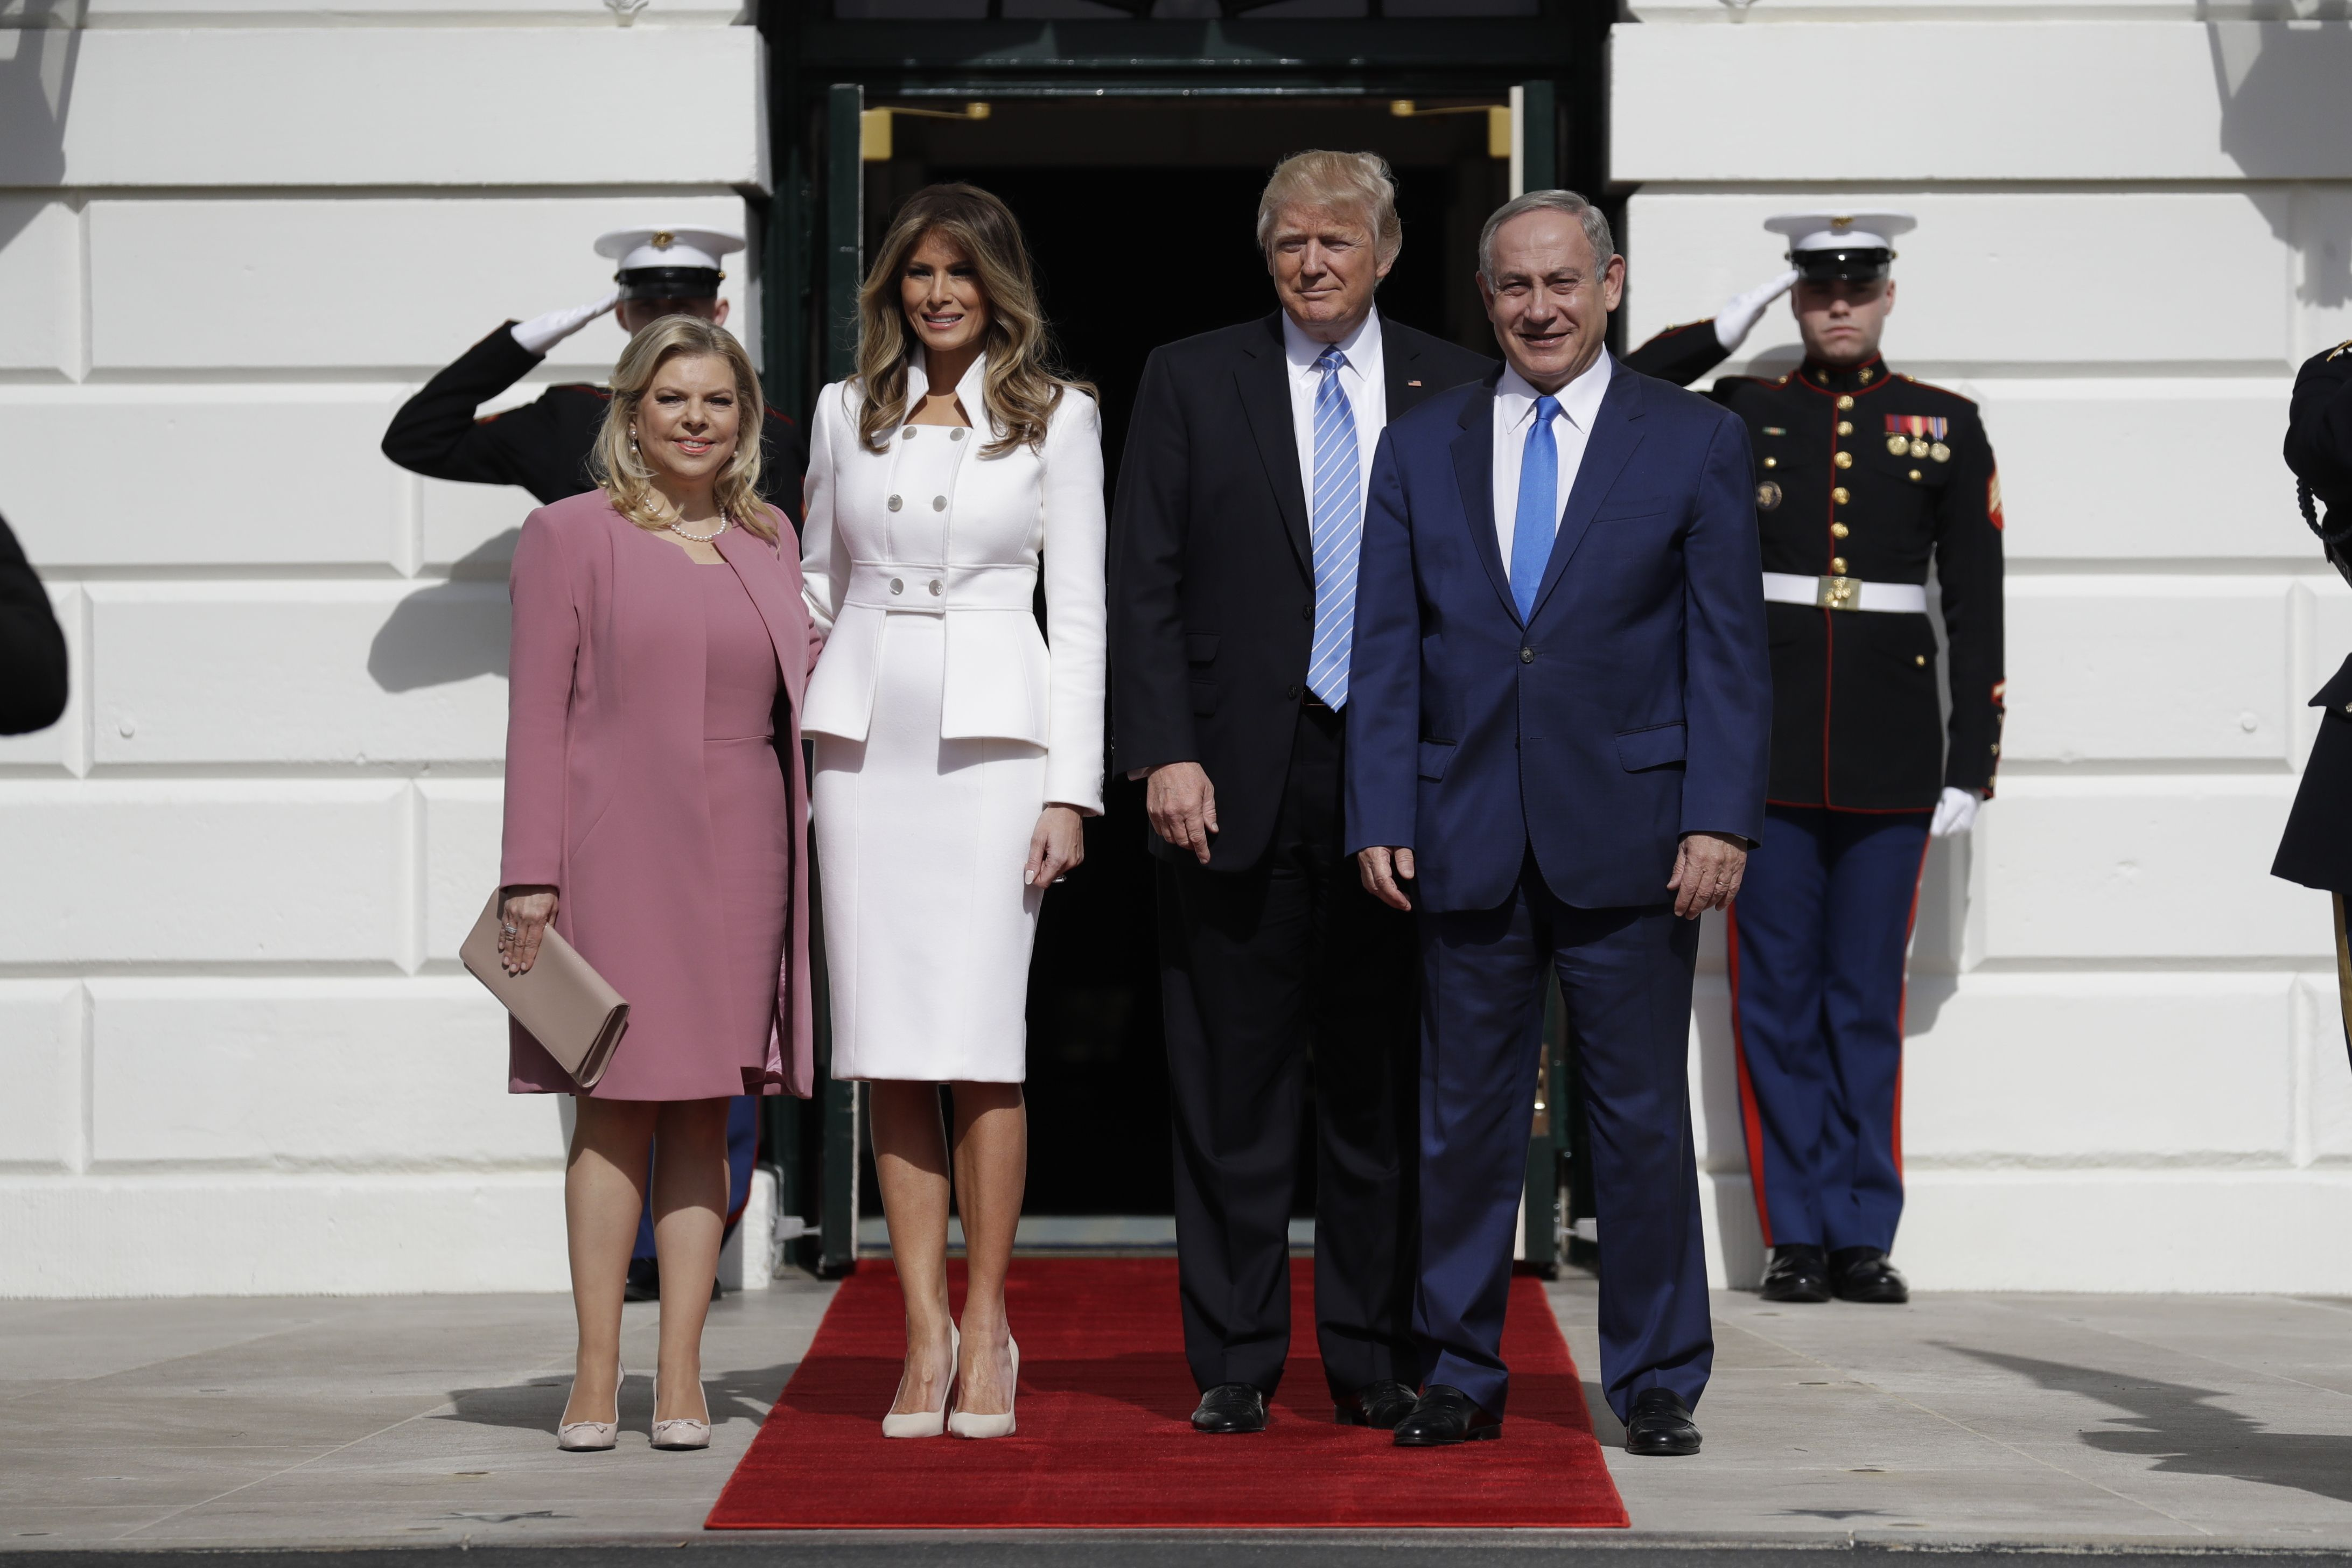 First Lady Melania Trump went with a Karl Lagerfeld couture ensemble to join the President at a press event with Israeli Prime Minister Benjamin Netanyahu and his wife Sara.